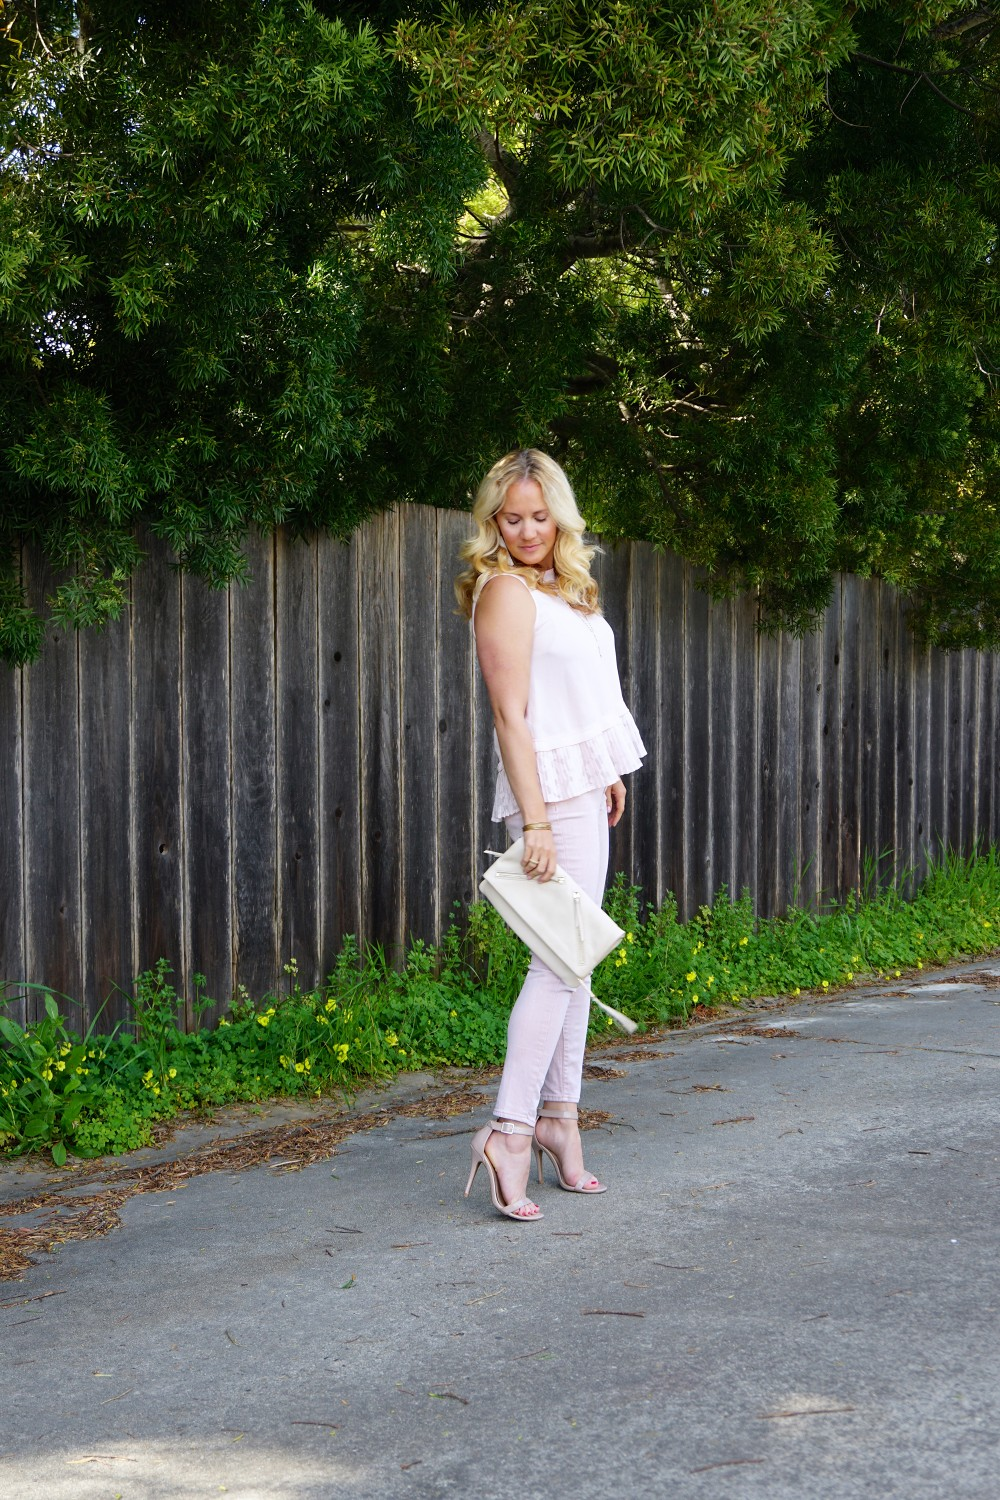 Blush Pink Easter Outfit-Easter Outfit Idea-Target Style-Who What Wear for Target-Outfit Inspiration-Have Need Want 8